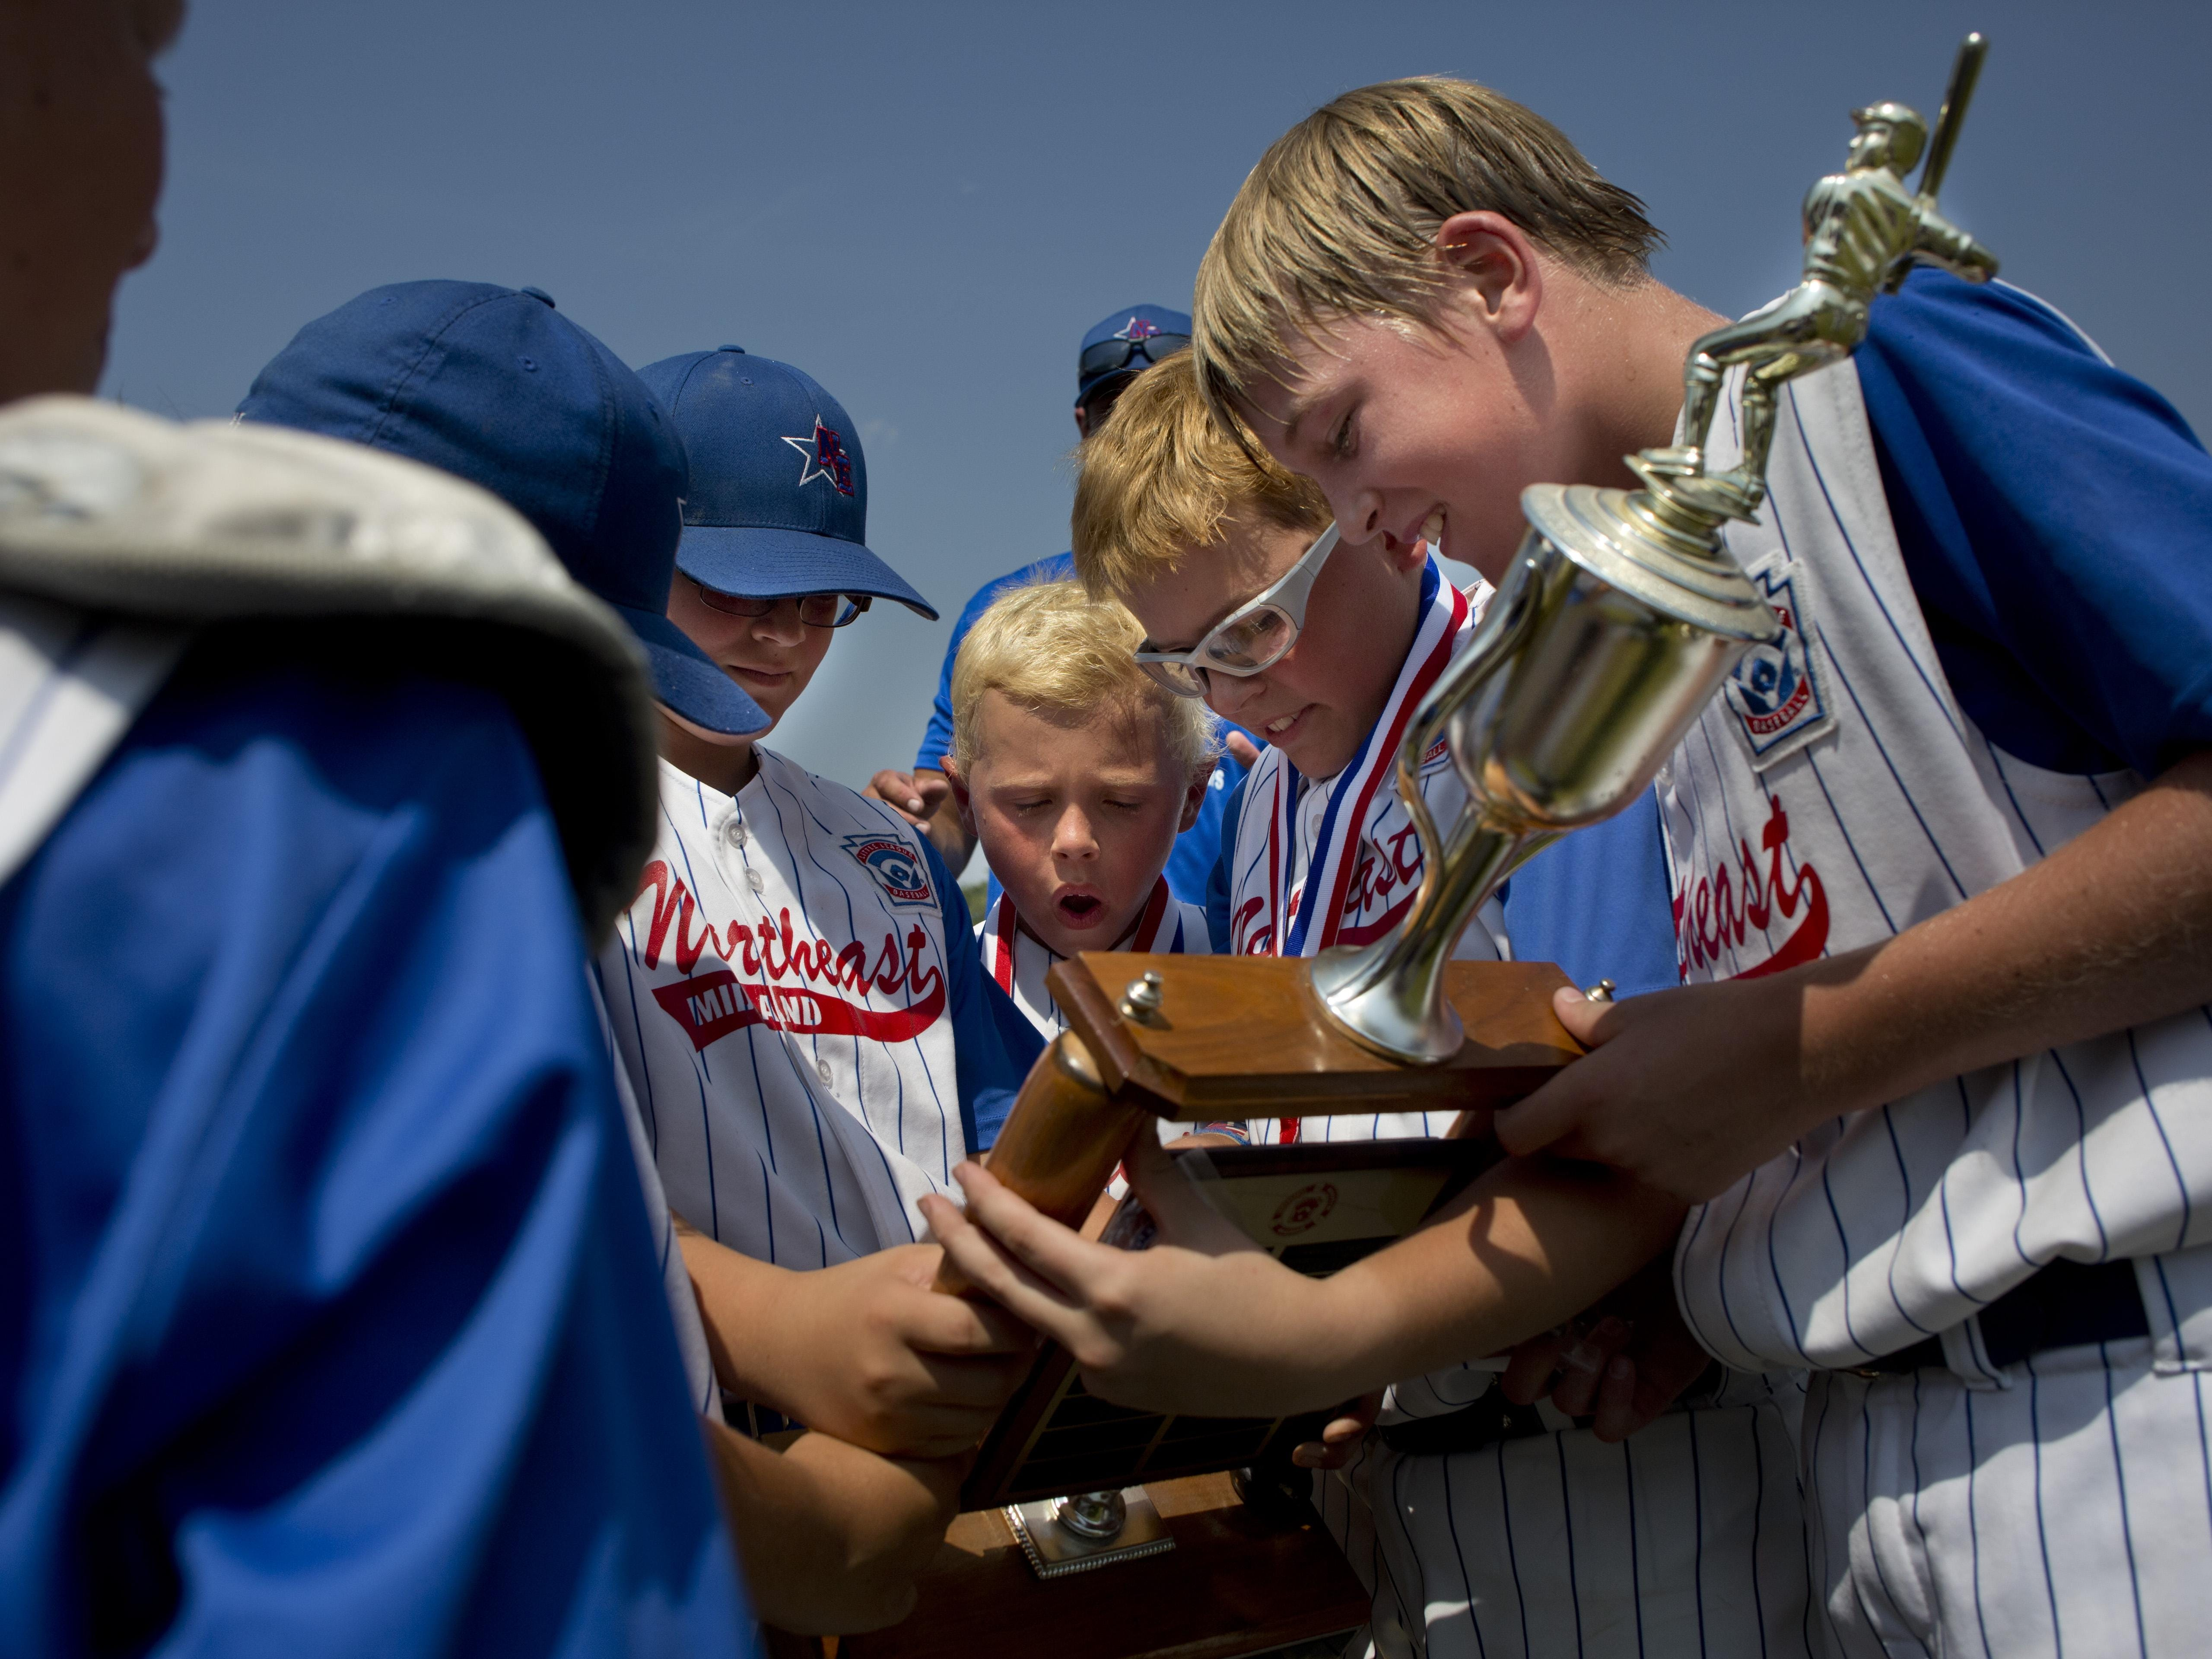 Midland Northeast players check out the trophy after beating Bay City Northwest in a state final 10-and-under baseball game Wednesday in St. Clair.